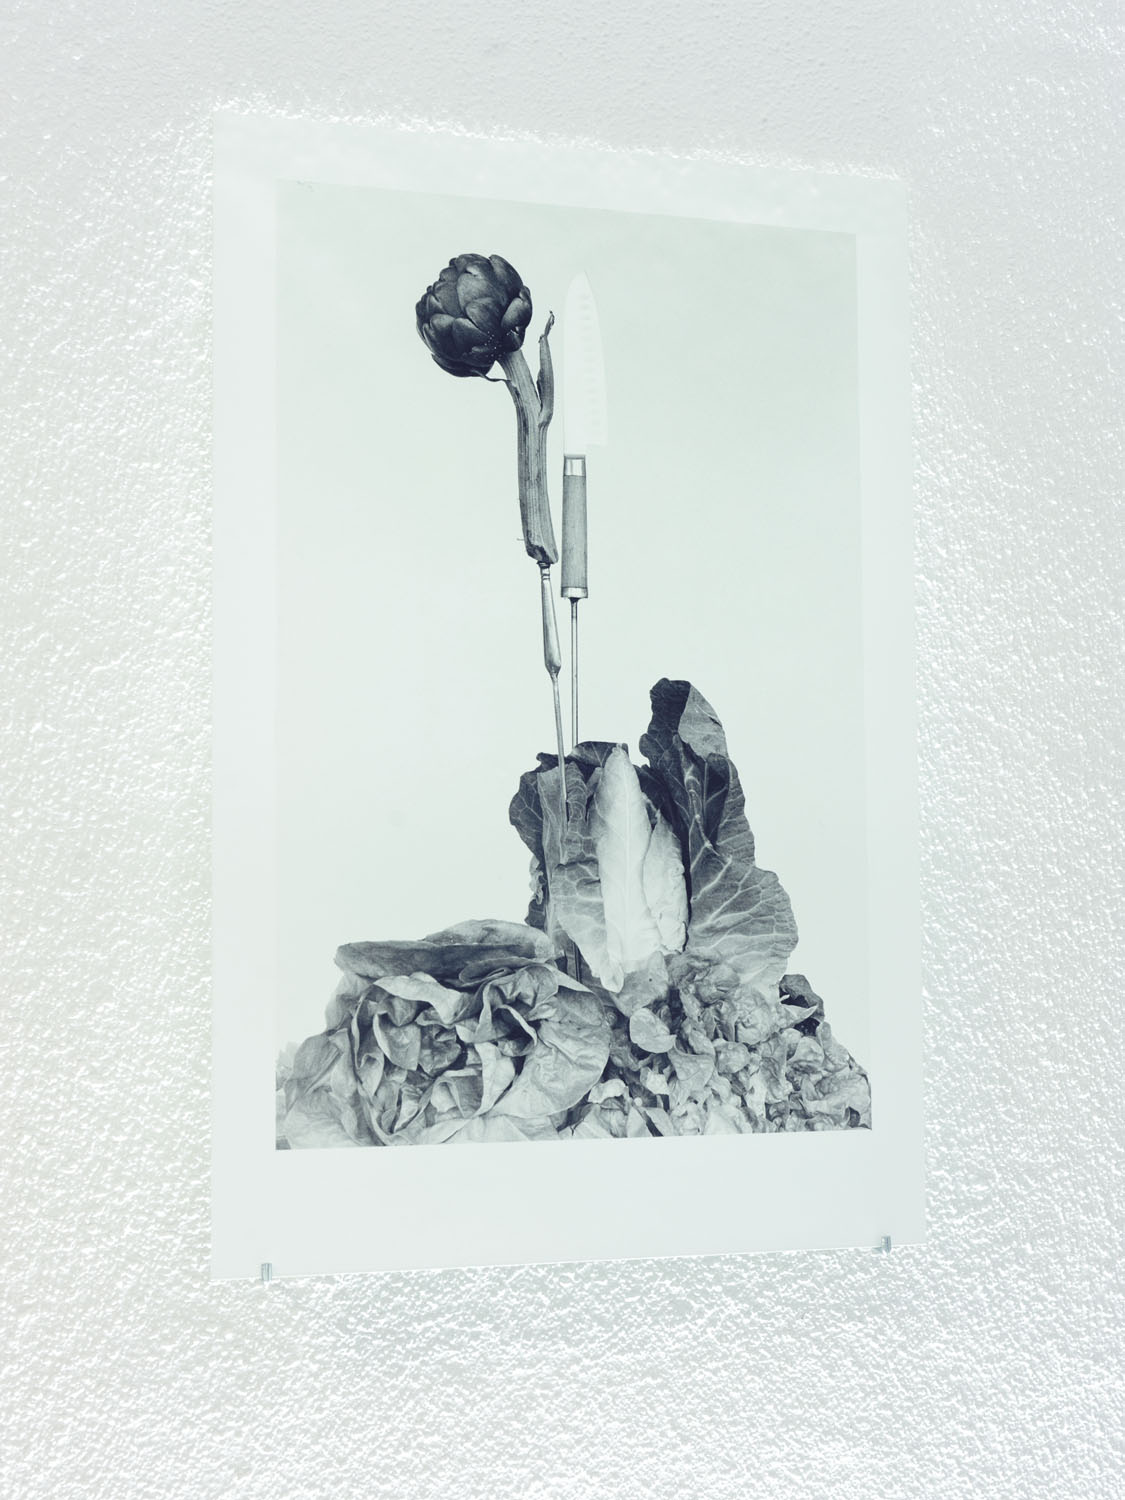 Stiel-Leben, 2019-2020, Silver gelatin on silk paper and glass, 80 x 60 cm. The translucent object is illuminated with a fluorescent light tube from above.